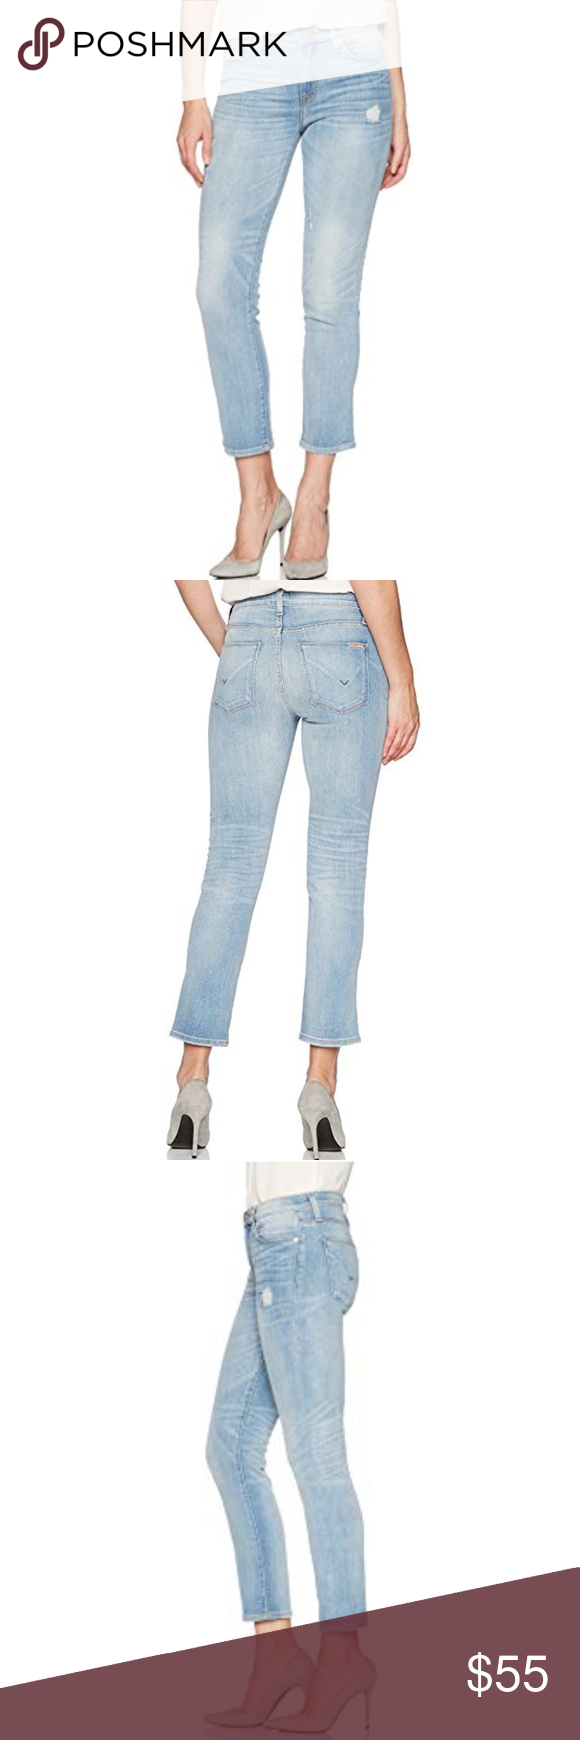 """674a4e0fcfe  Hudson  Mid Rise Crop Zoeey Straight Leg Jeans Hudson """" Zooey """" Mid Rise"""